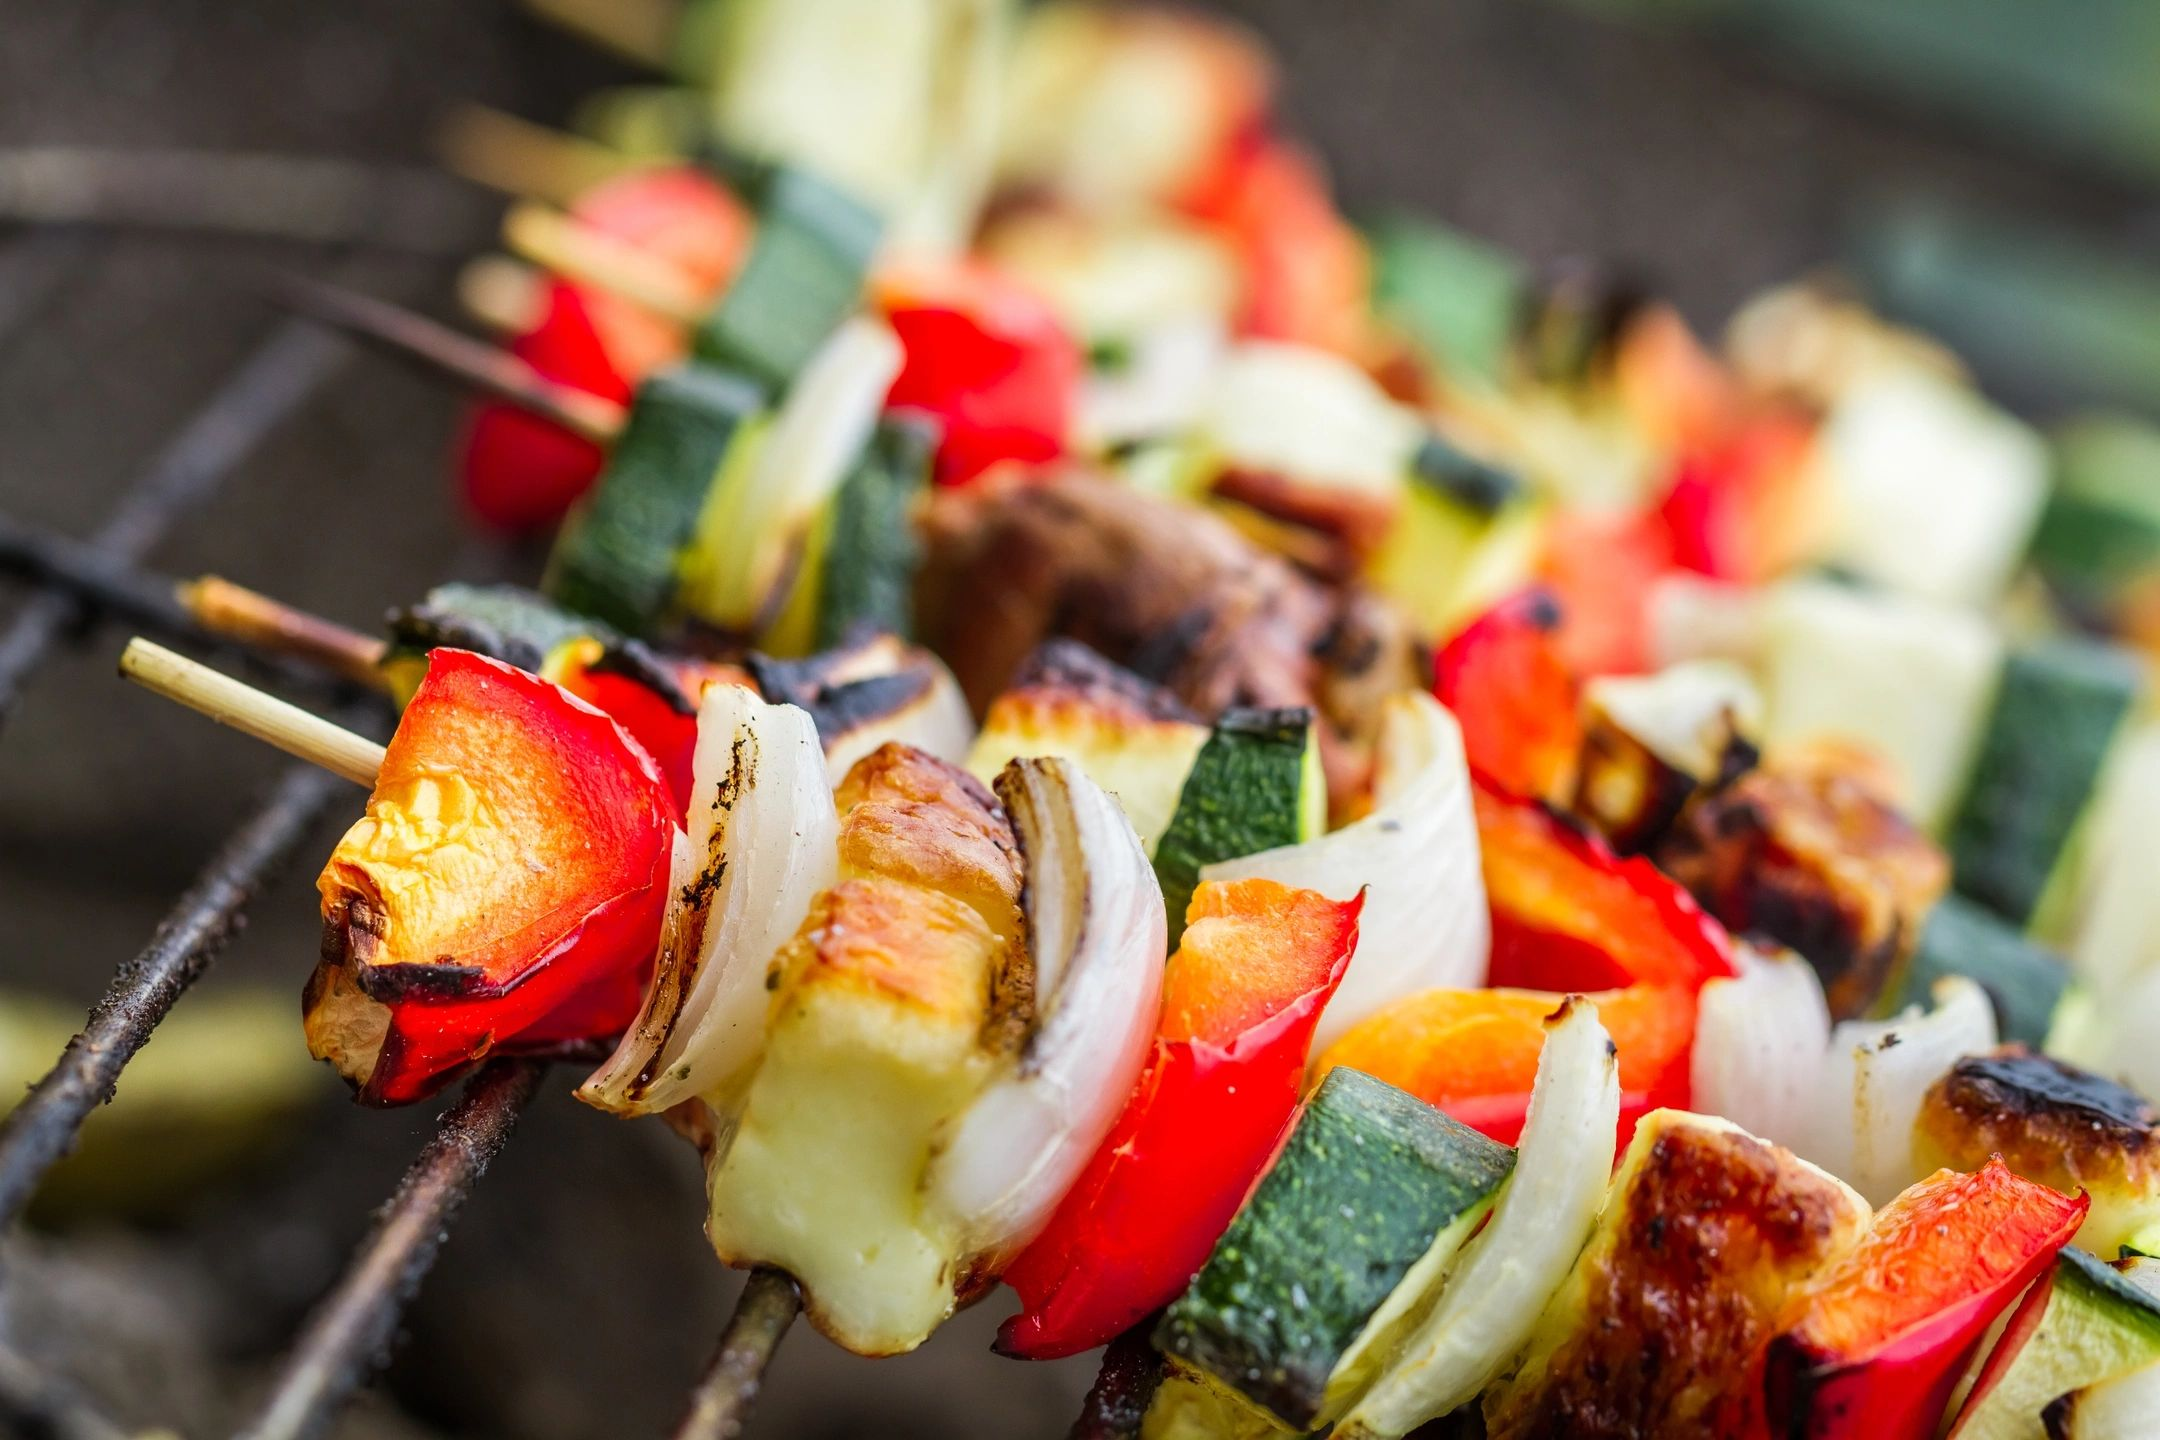 Photo of several vegetable kebabs on a grill